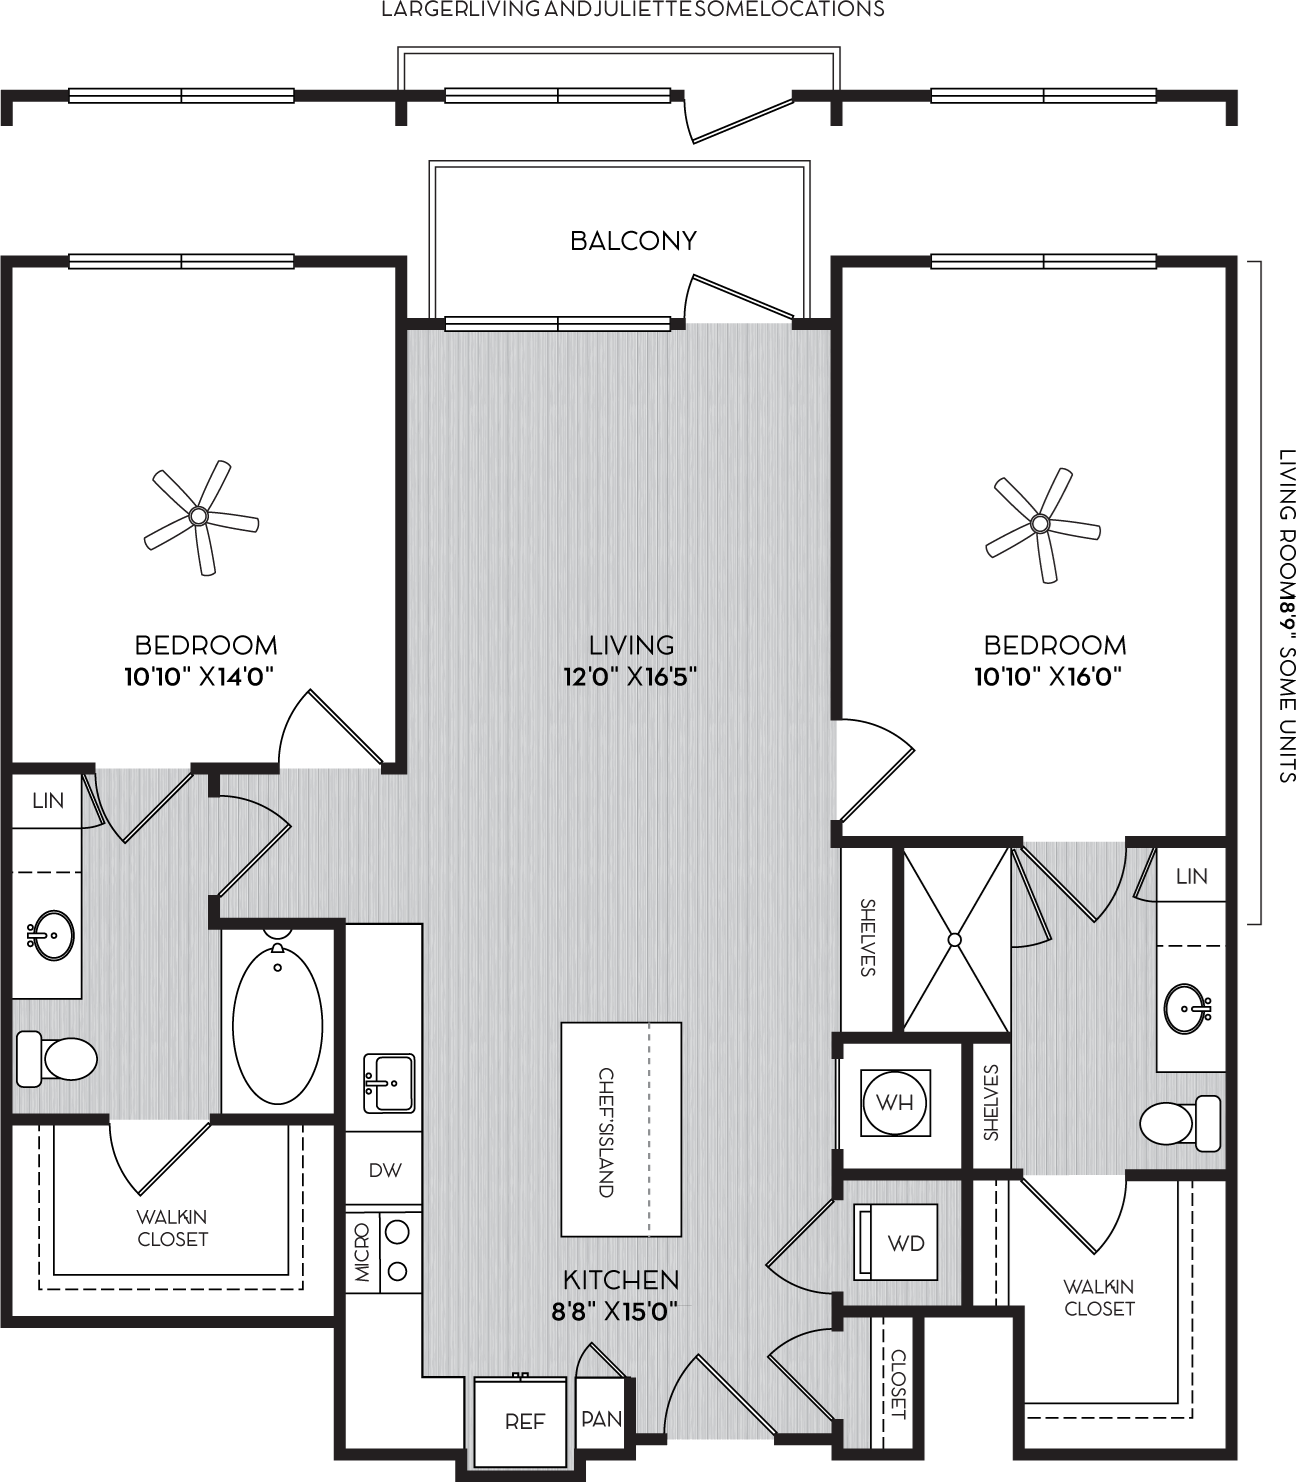 B1d Two Bedroom Floor Plan with Balcony at Apartment Homes For Rent in Vinings, GA